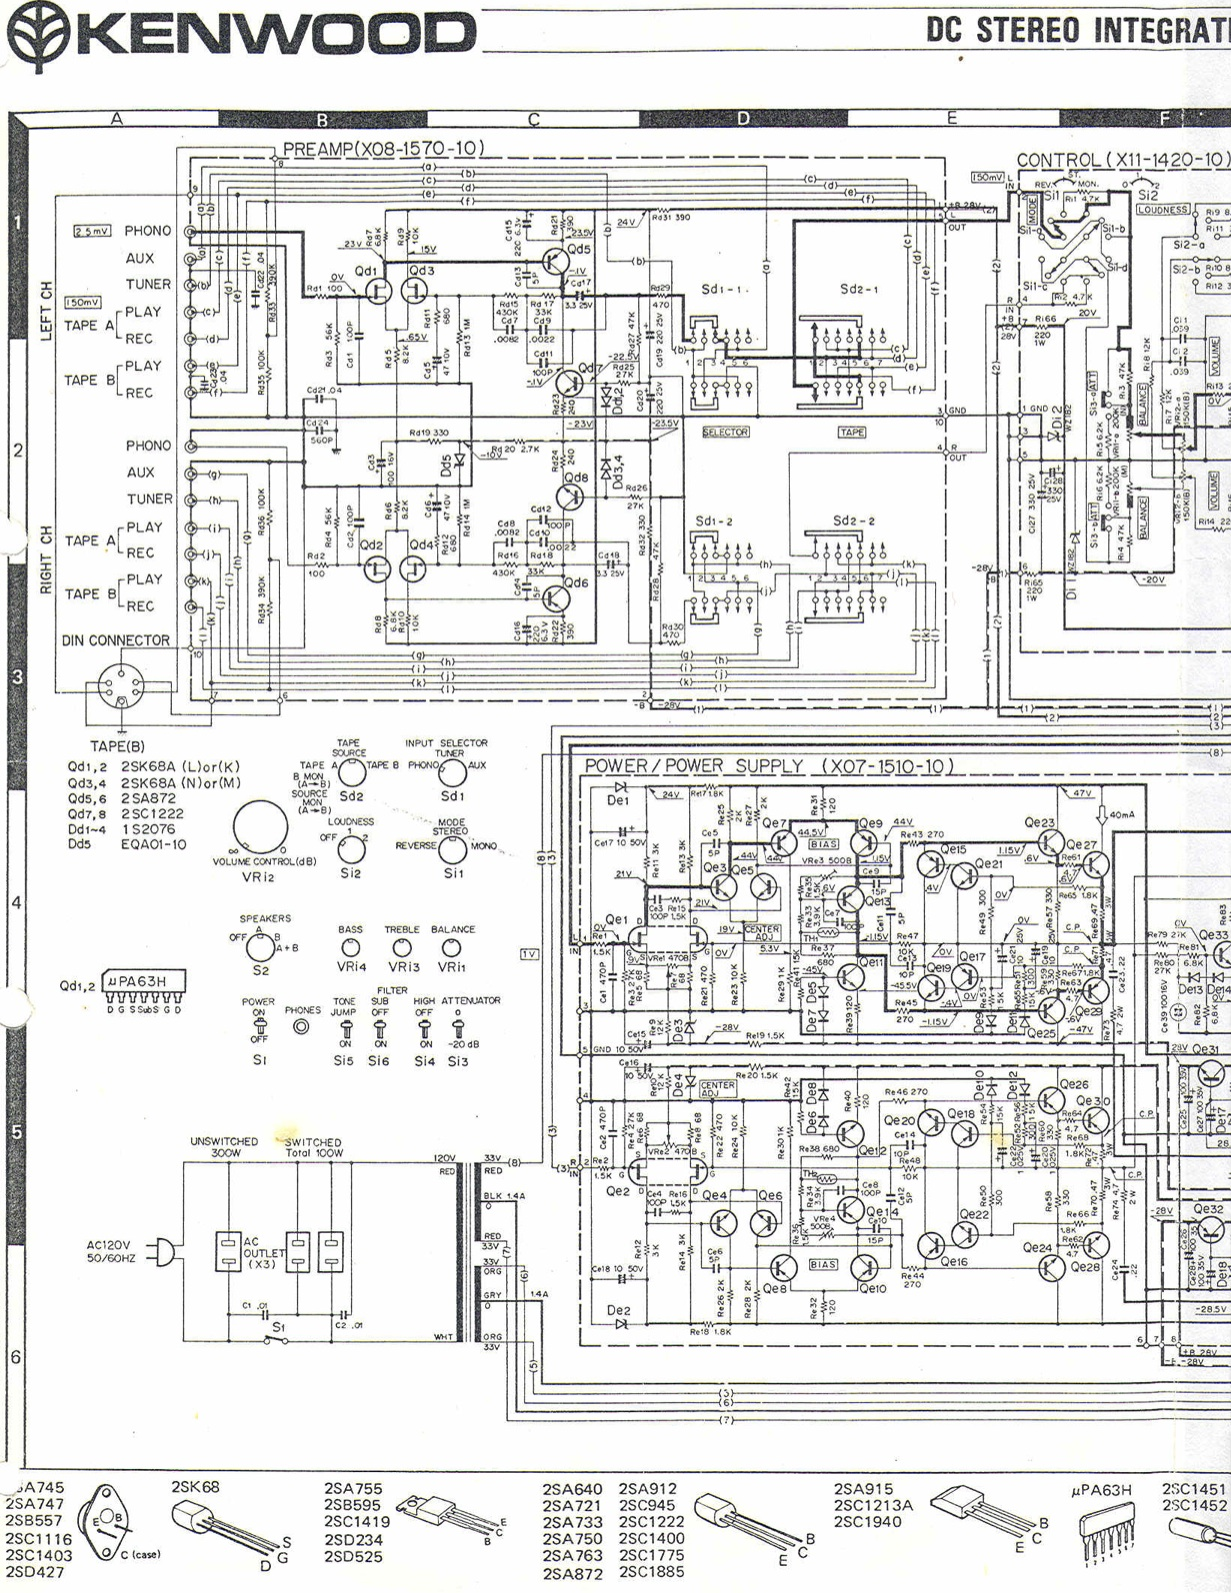 york wiring schematics york furnace wiring schematic york image wiring york furnace wiring diagram the wiring diagram on york